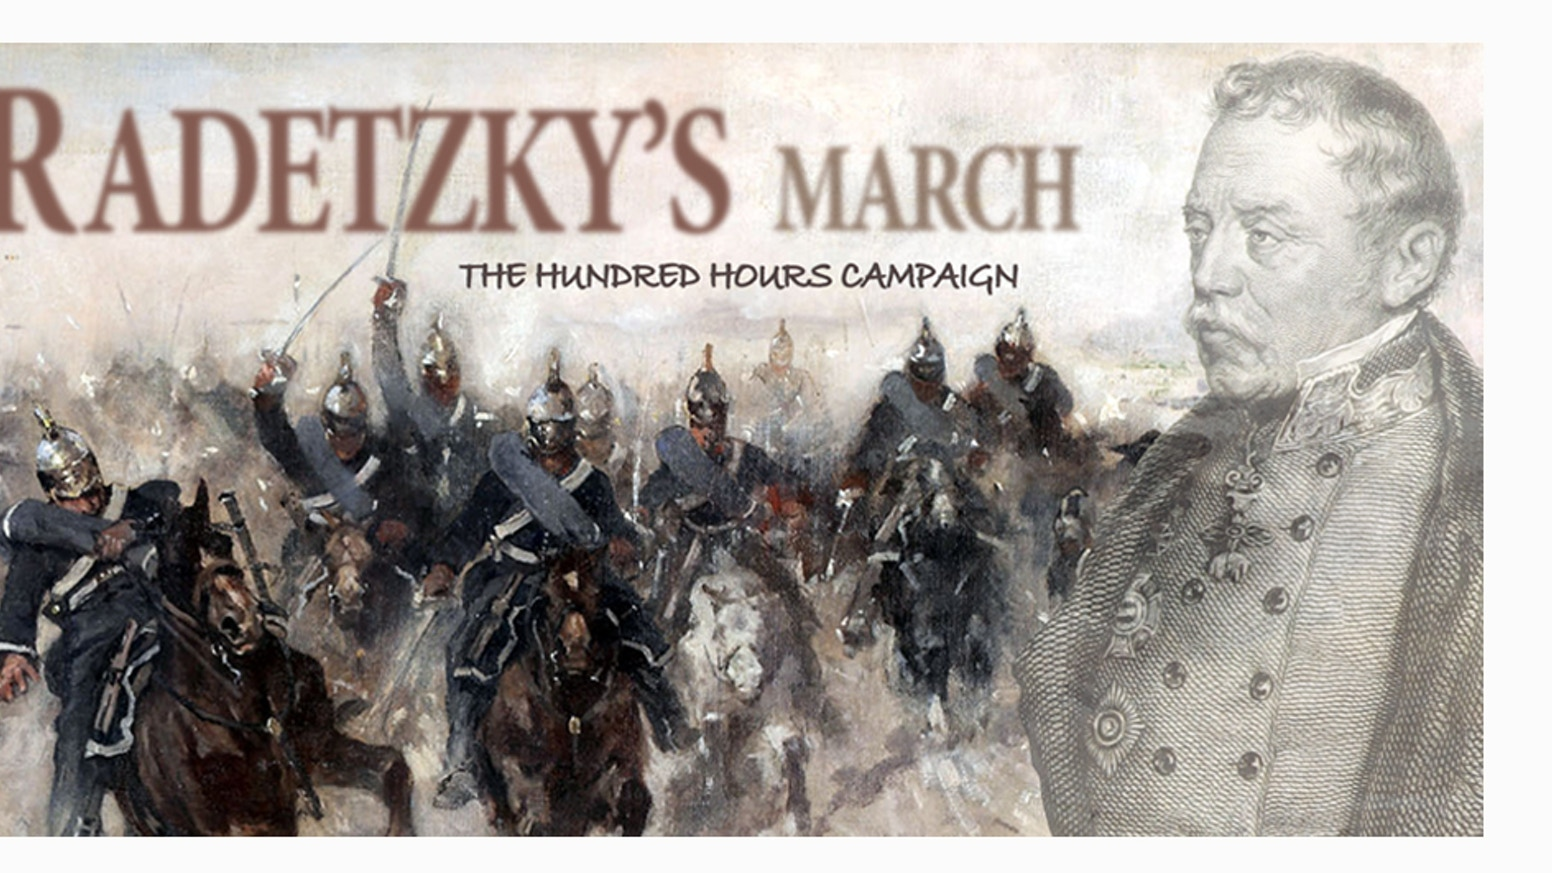 A furious, fast and simple wargame about the last campaign of Radetzky, fought in 1849 against the small but tough Sardinian Kingdom.